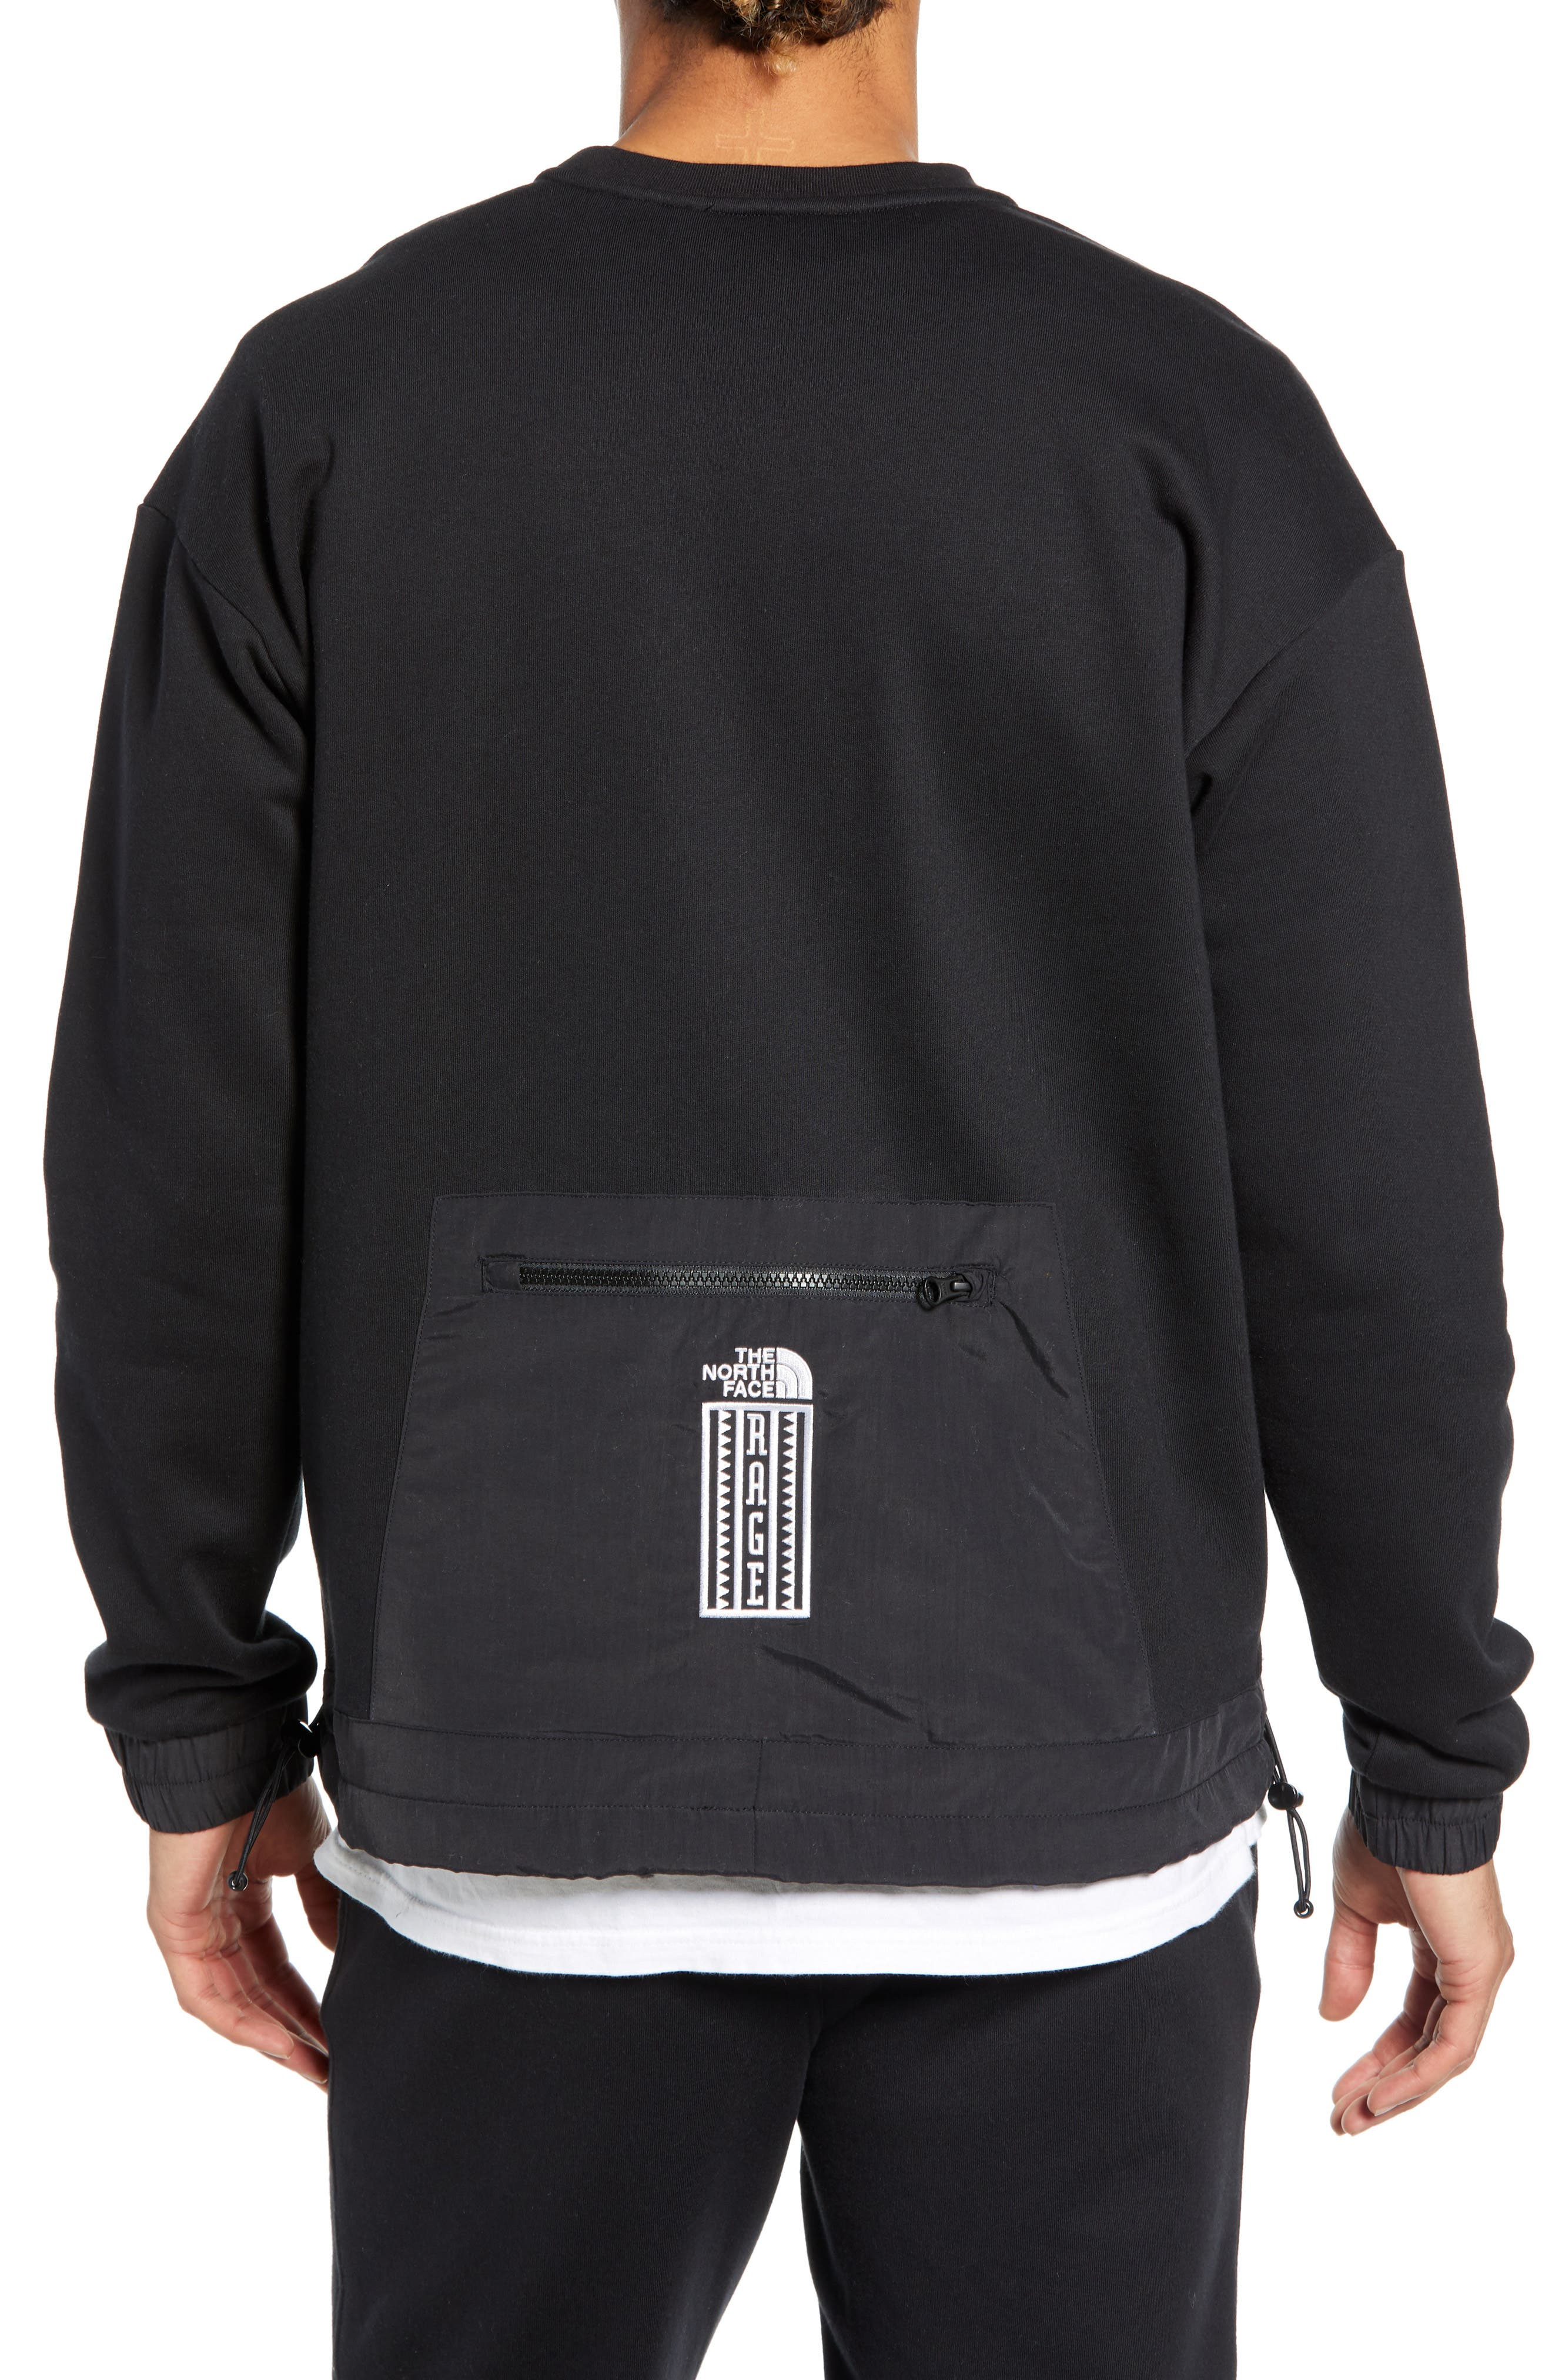 THE NORTH FACE, 1992 Rage Collection Sweatshirt, Alternate thumbnail 2, color, 001